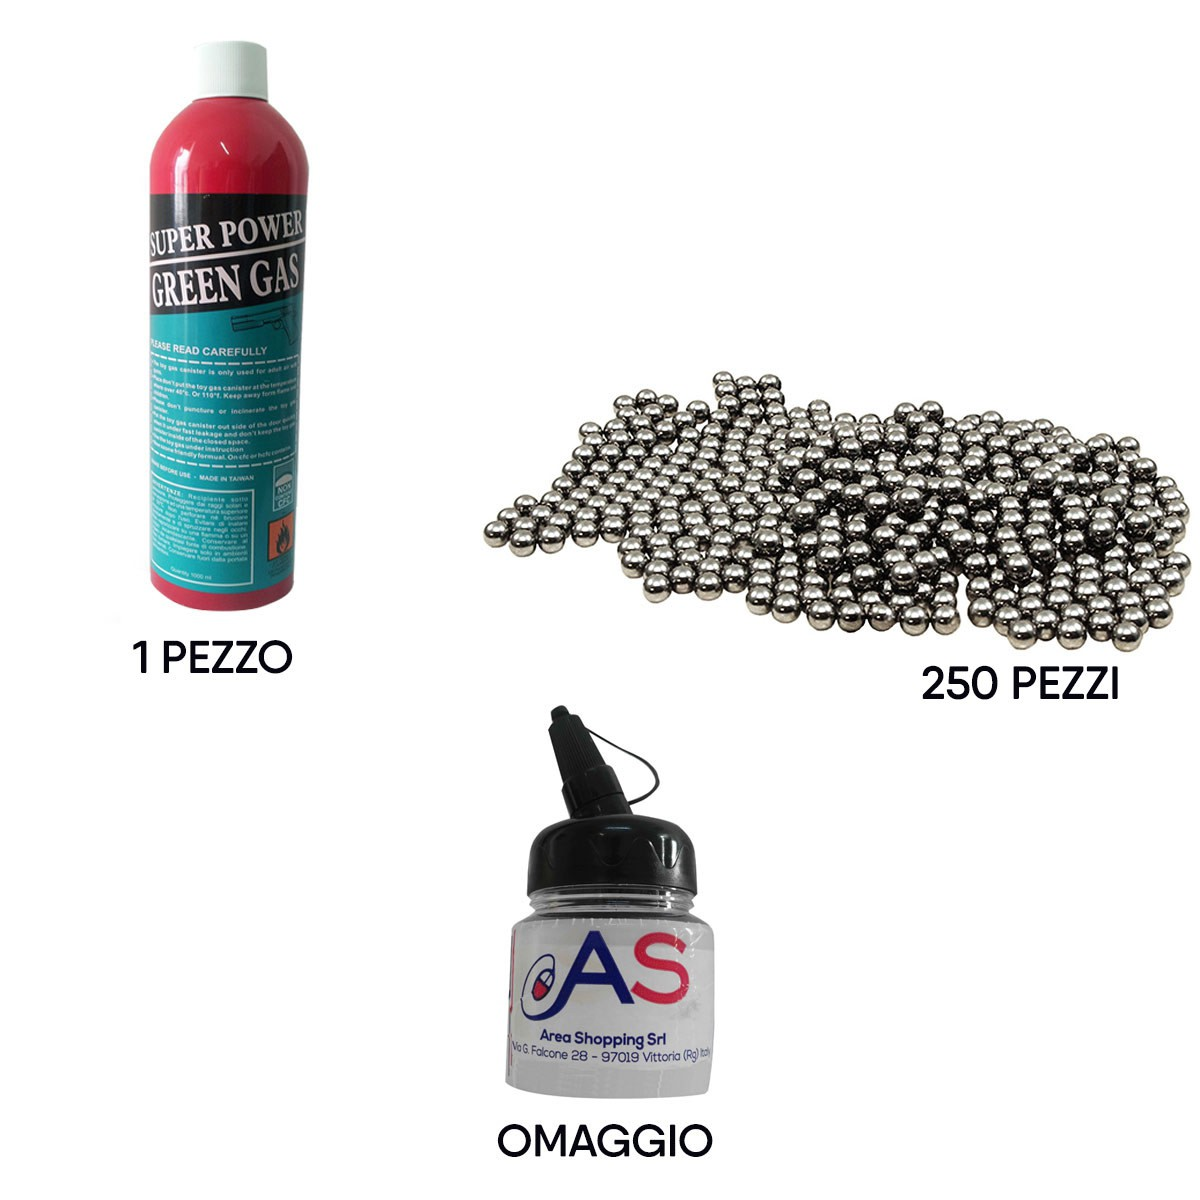 Kit Softair Bombola Green Gas 1000ml + 250 Pallini Metallo 6mm + Biberon Omaggio